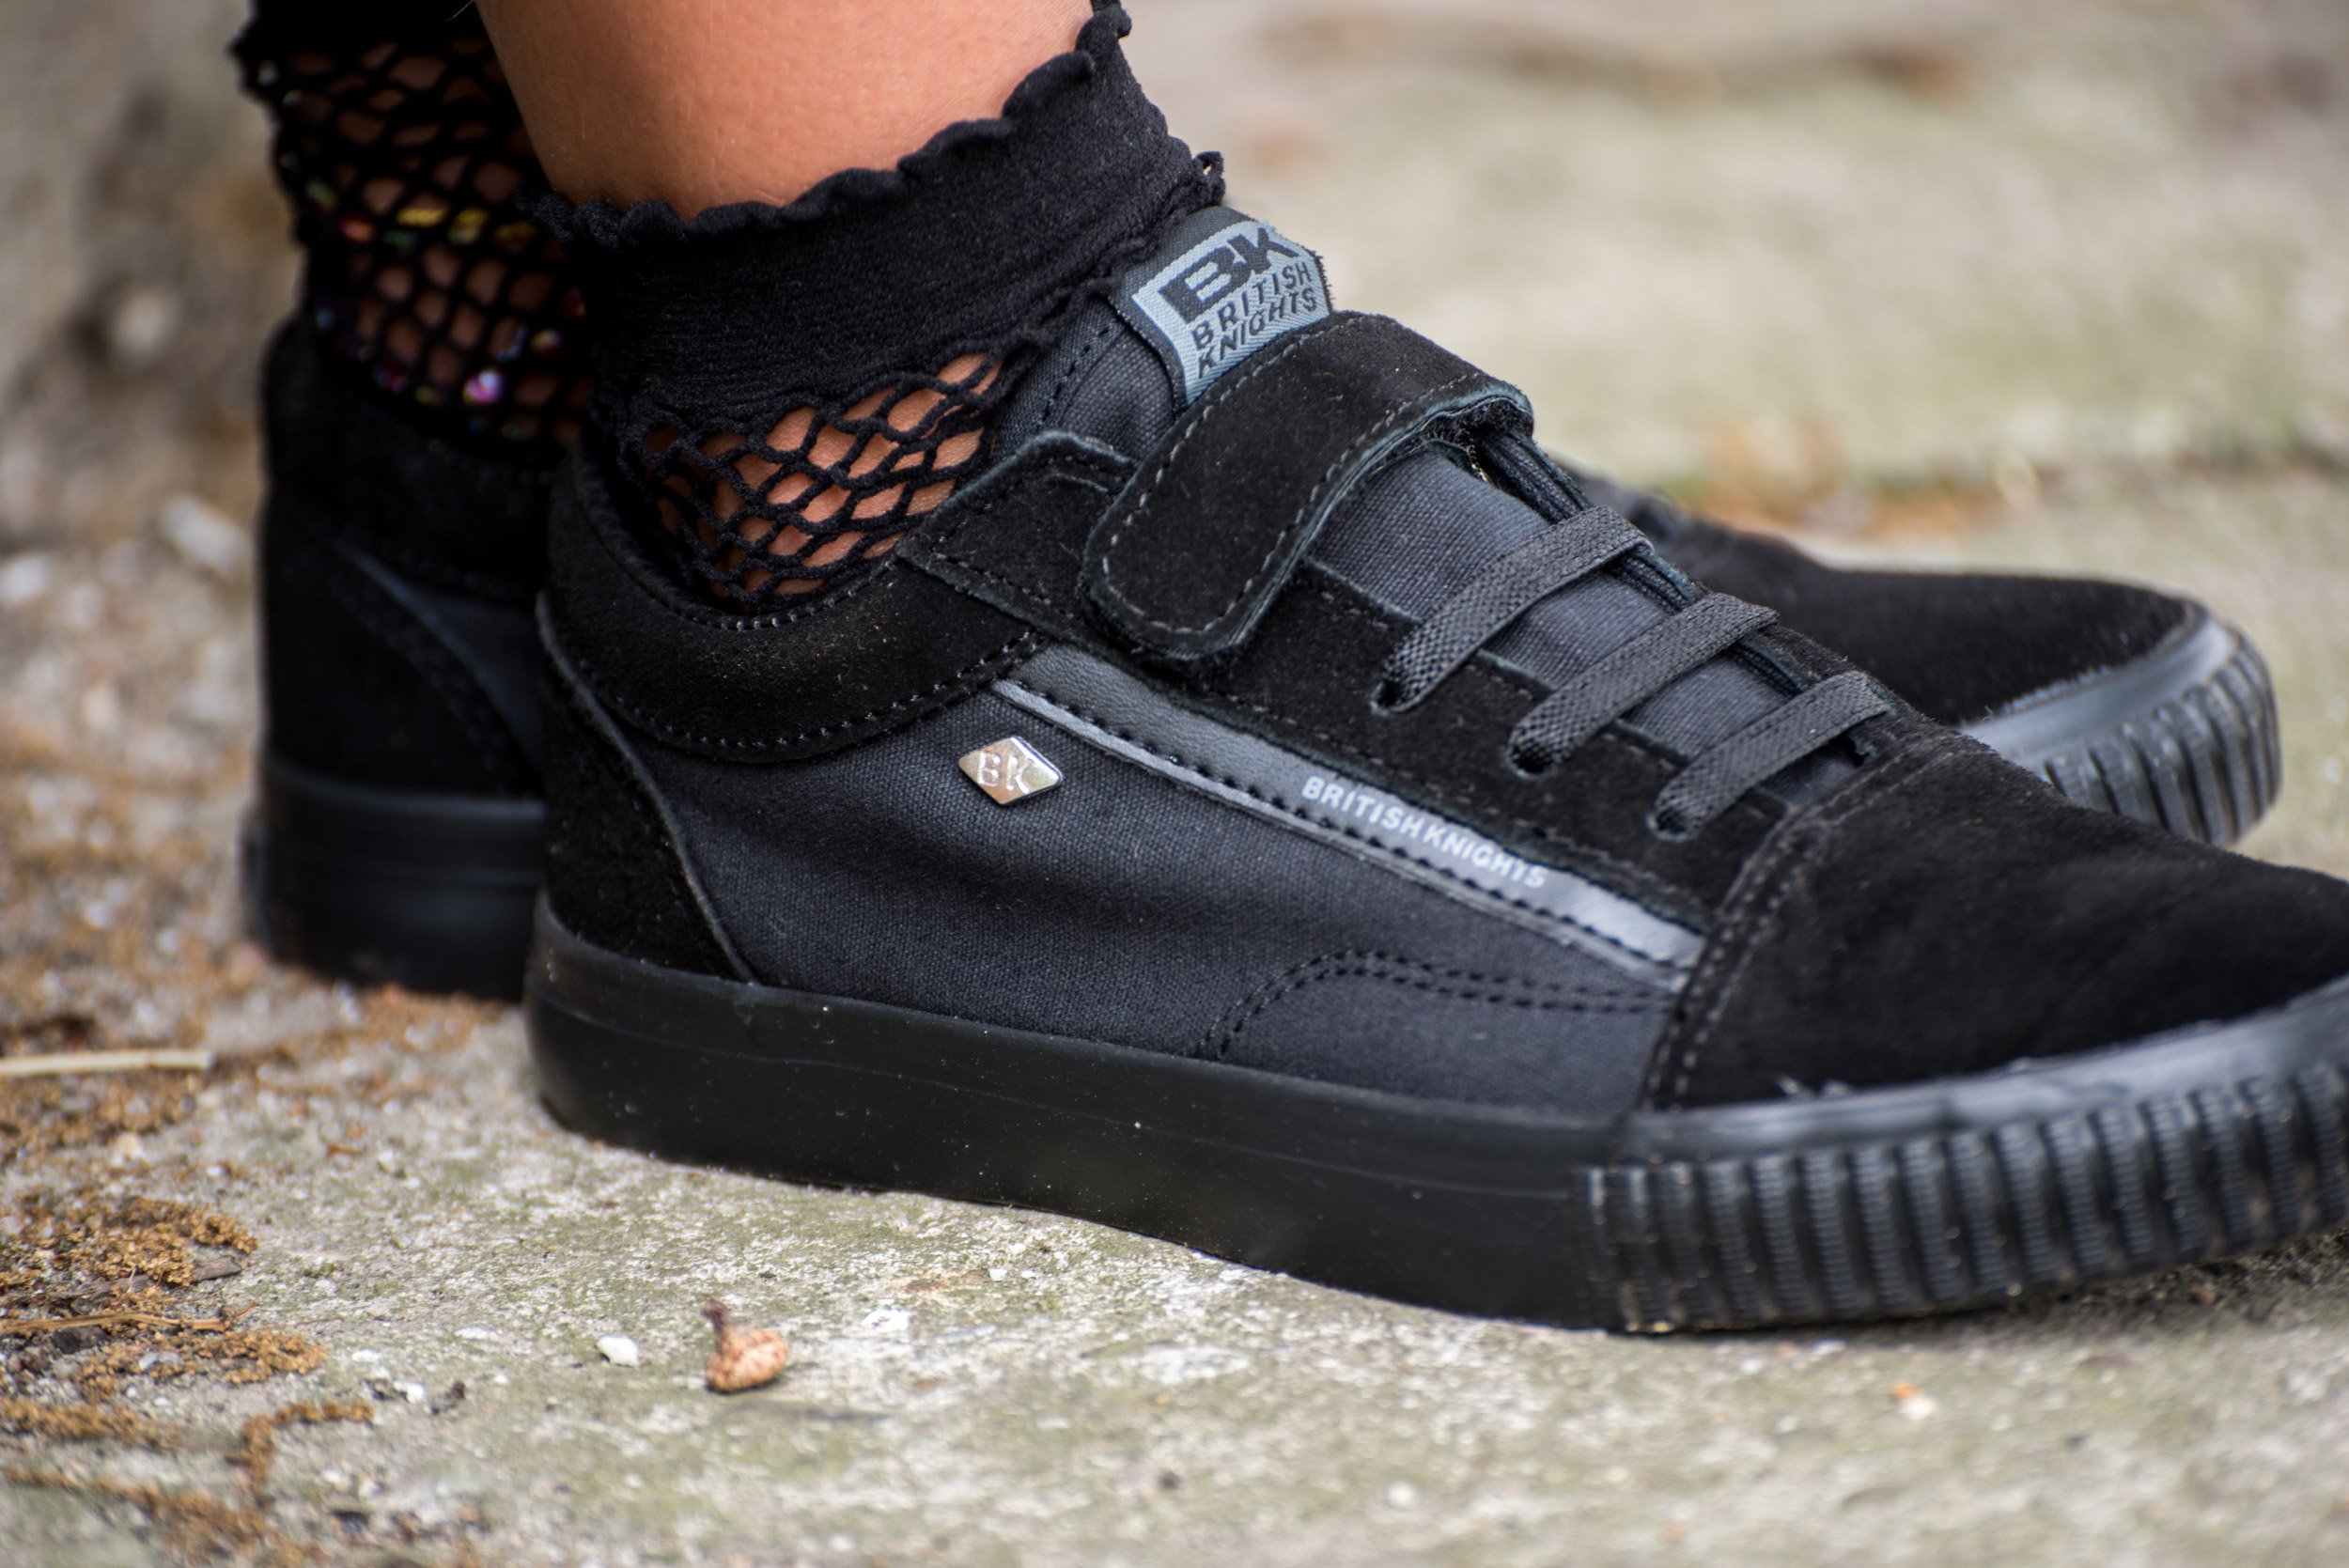 New school year - New Black kids shoes